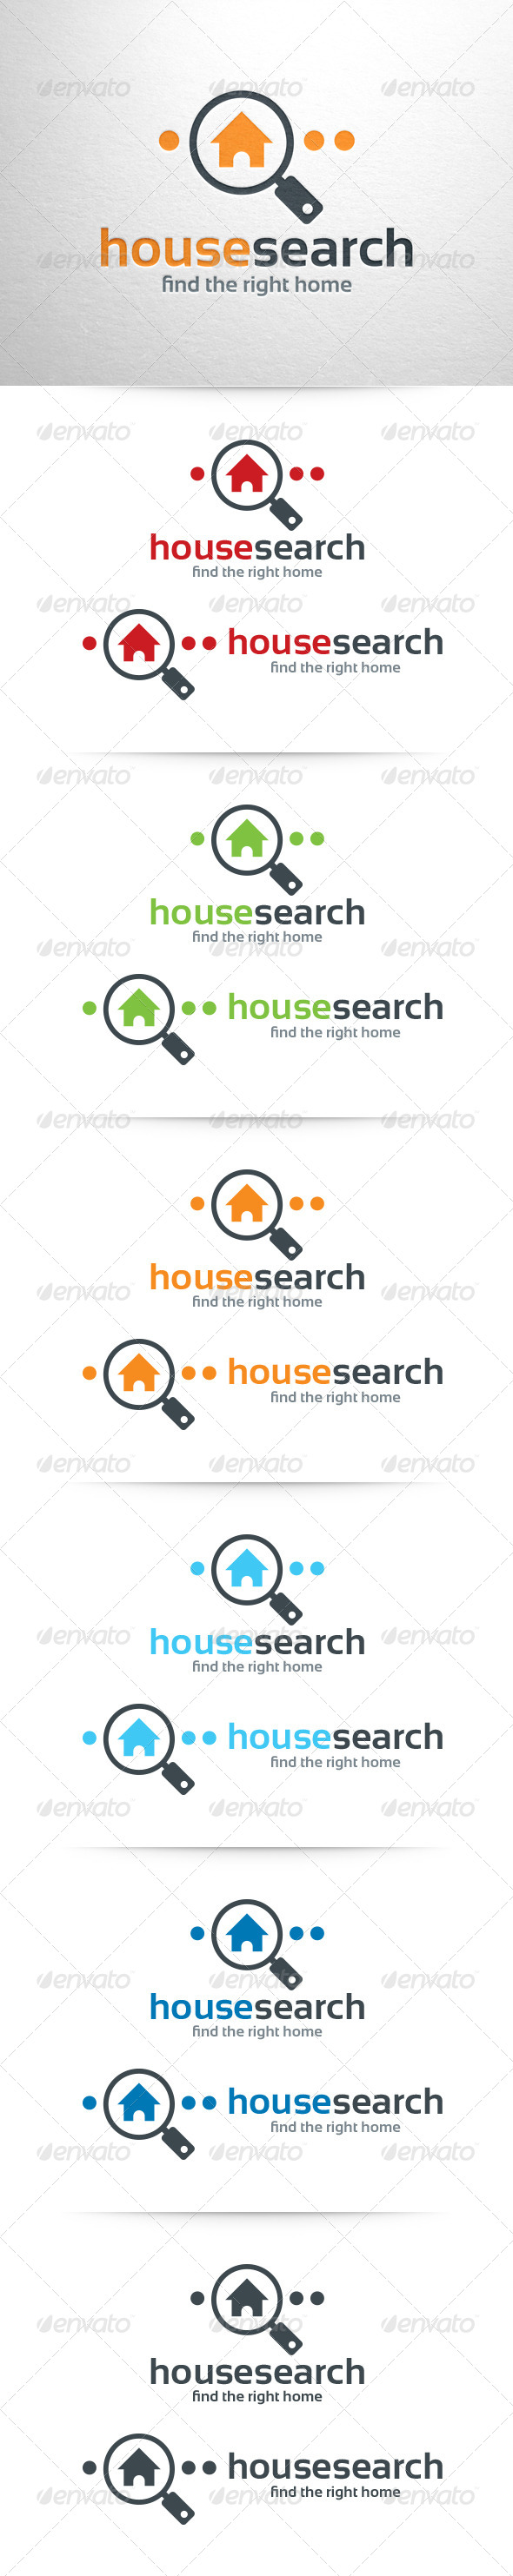 GraphicRiver House Search Logo Template 6518687